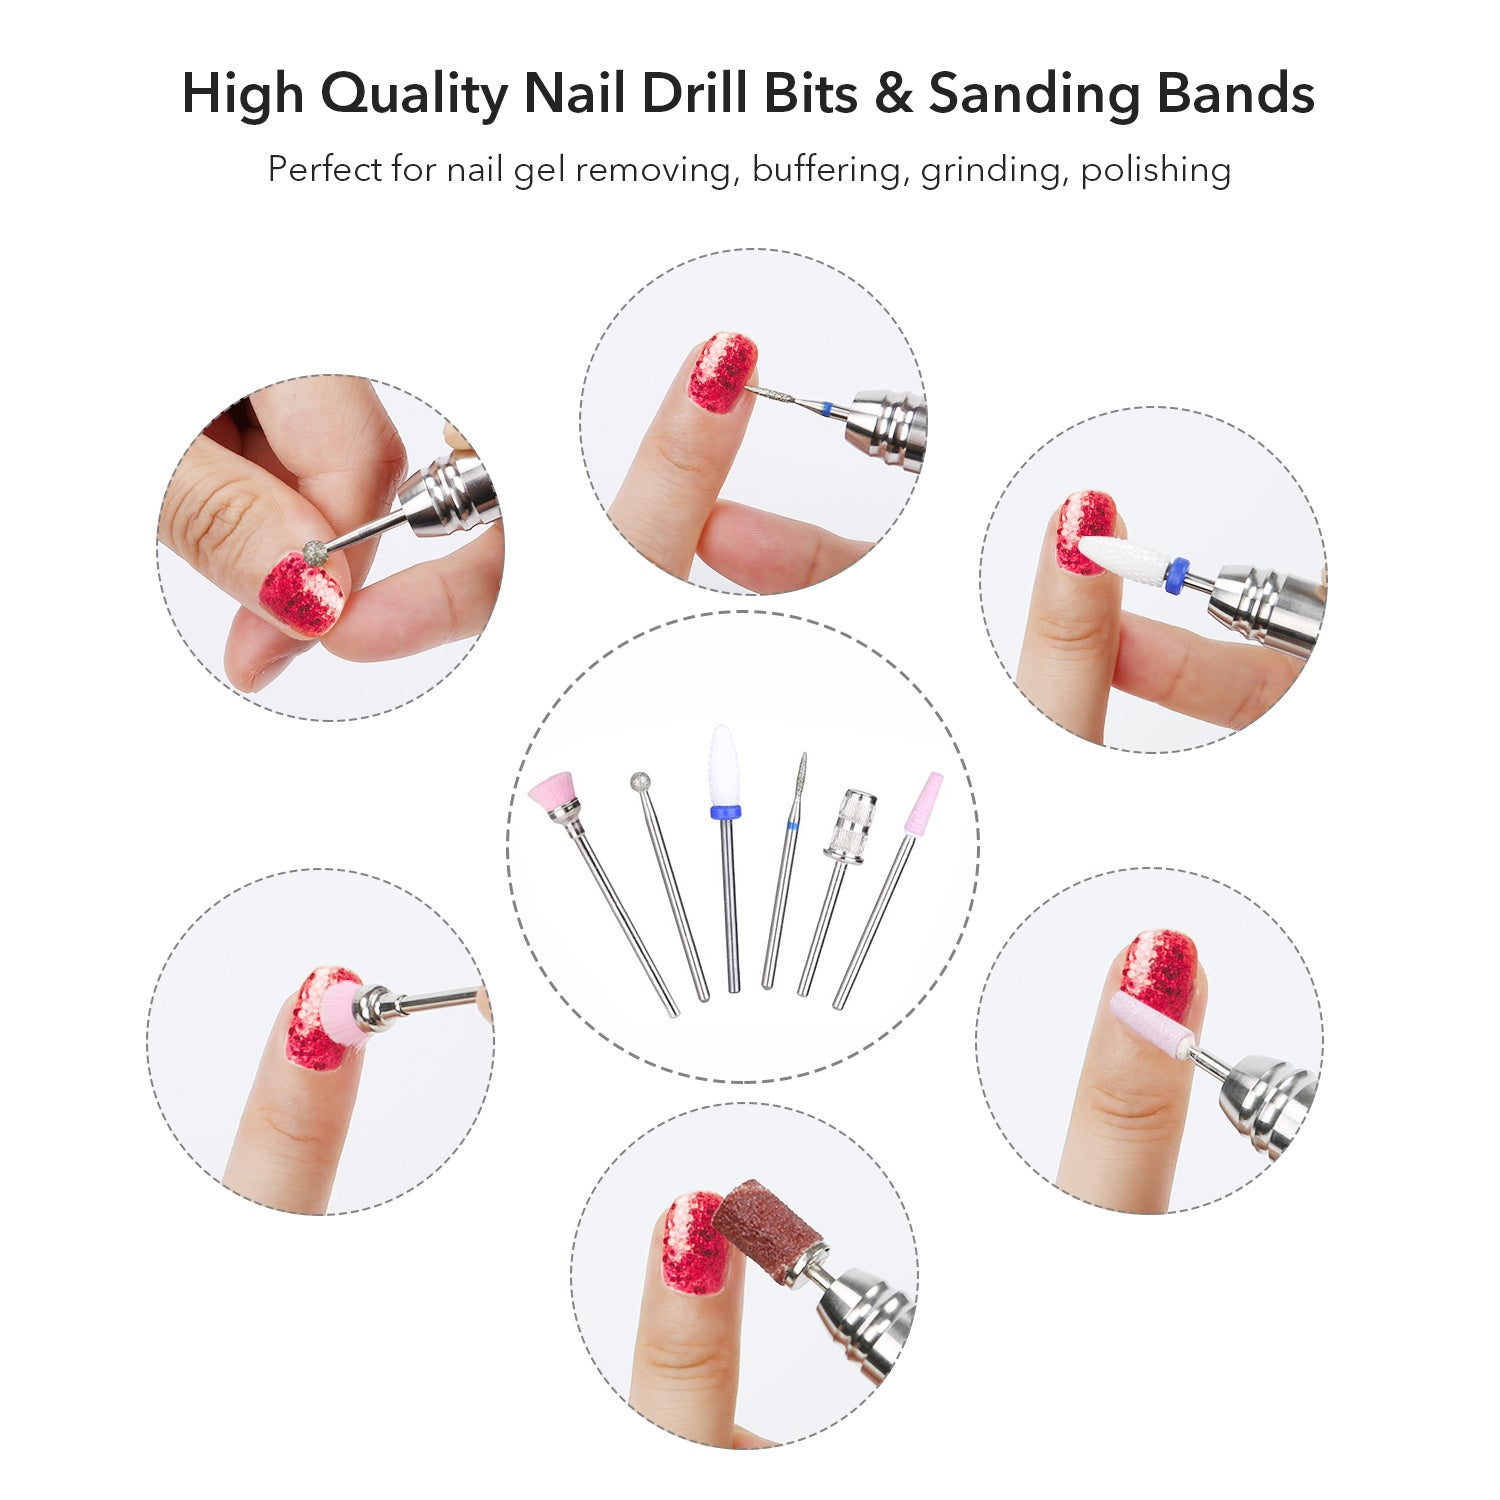 Belle 35000RPM Nail Drill Electric Brushless Efile Manicure Pedicure Drill with Portable Bag, White